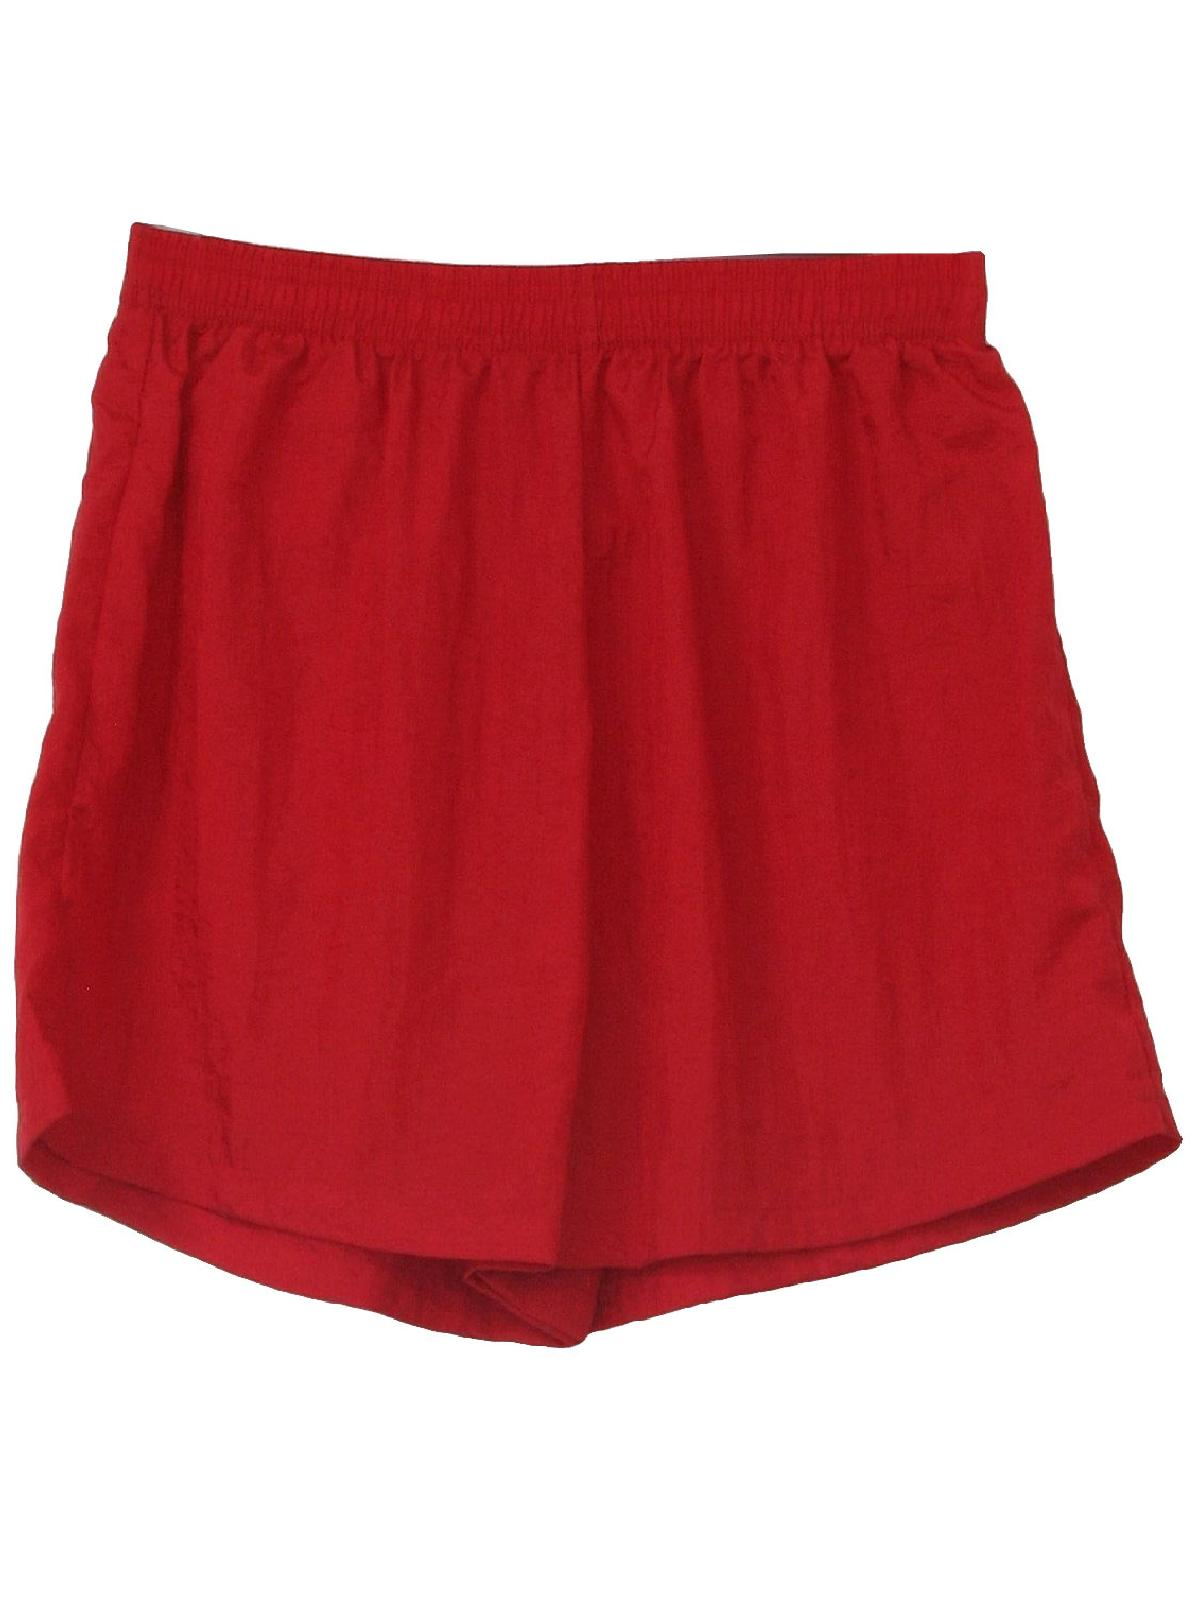 Retro 80s Shorts (Hanes Her Way) : 80s -Hanes Her Way- Womens red ...